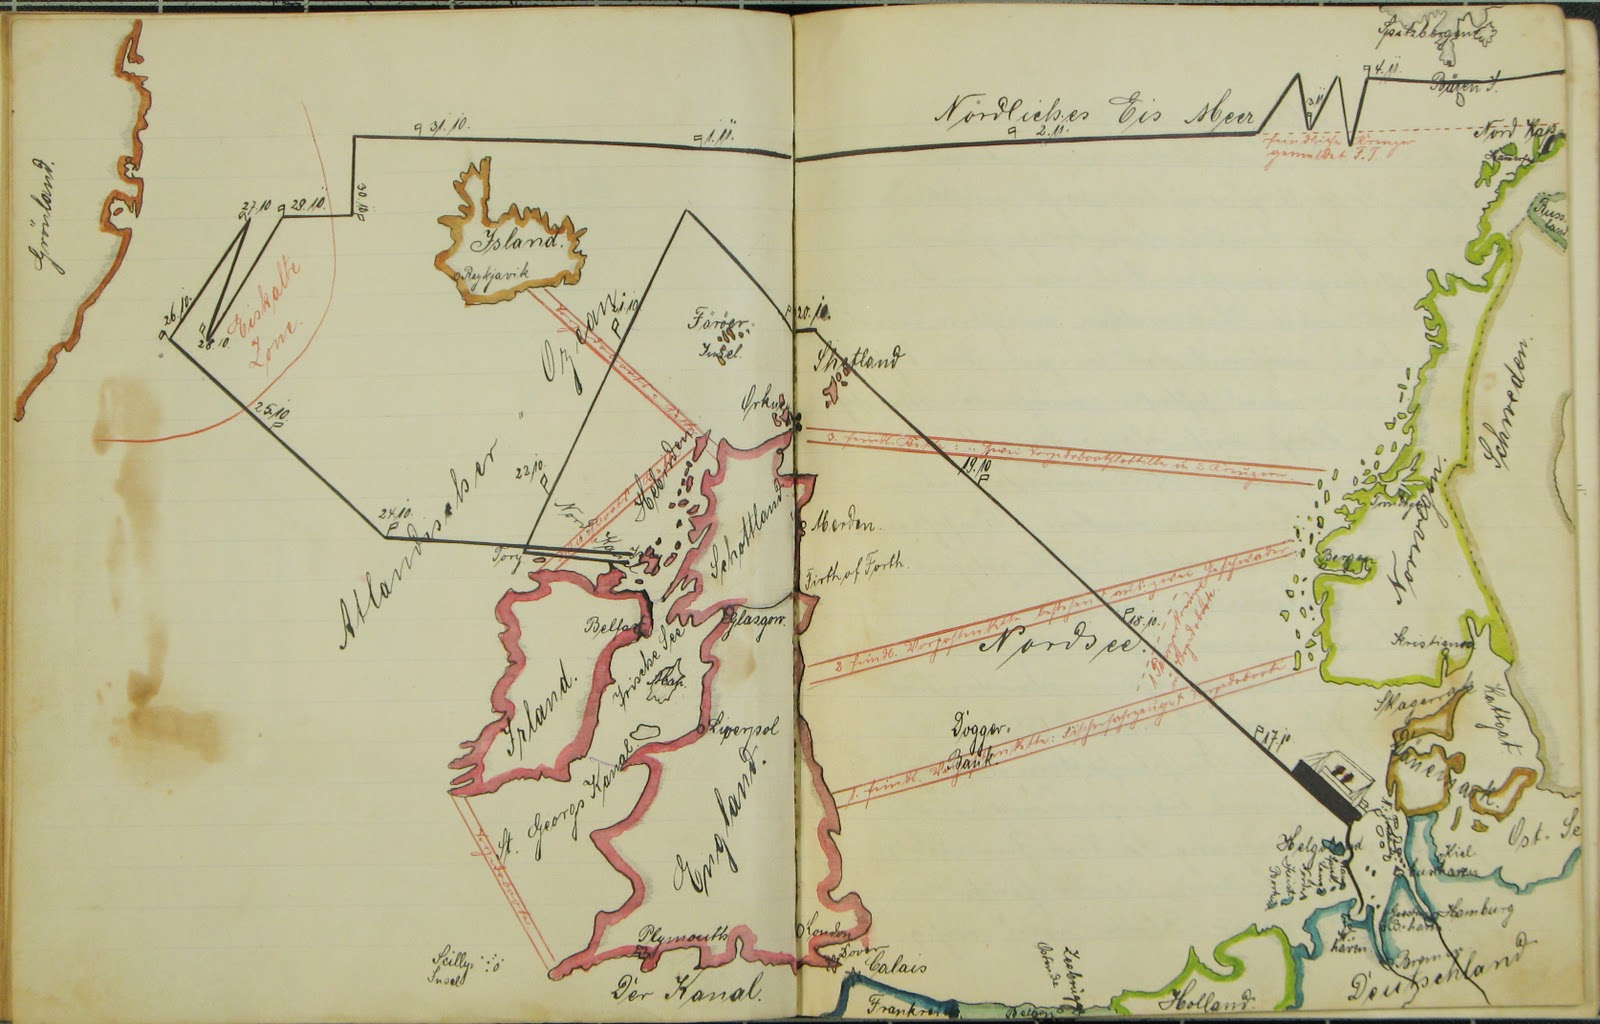 Map drawn by Rudolf Kämmerer in the diary he kept during the First World War